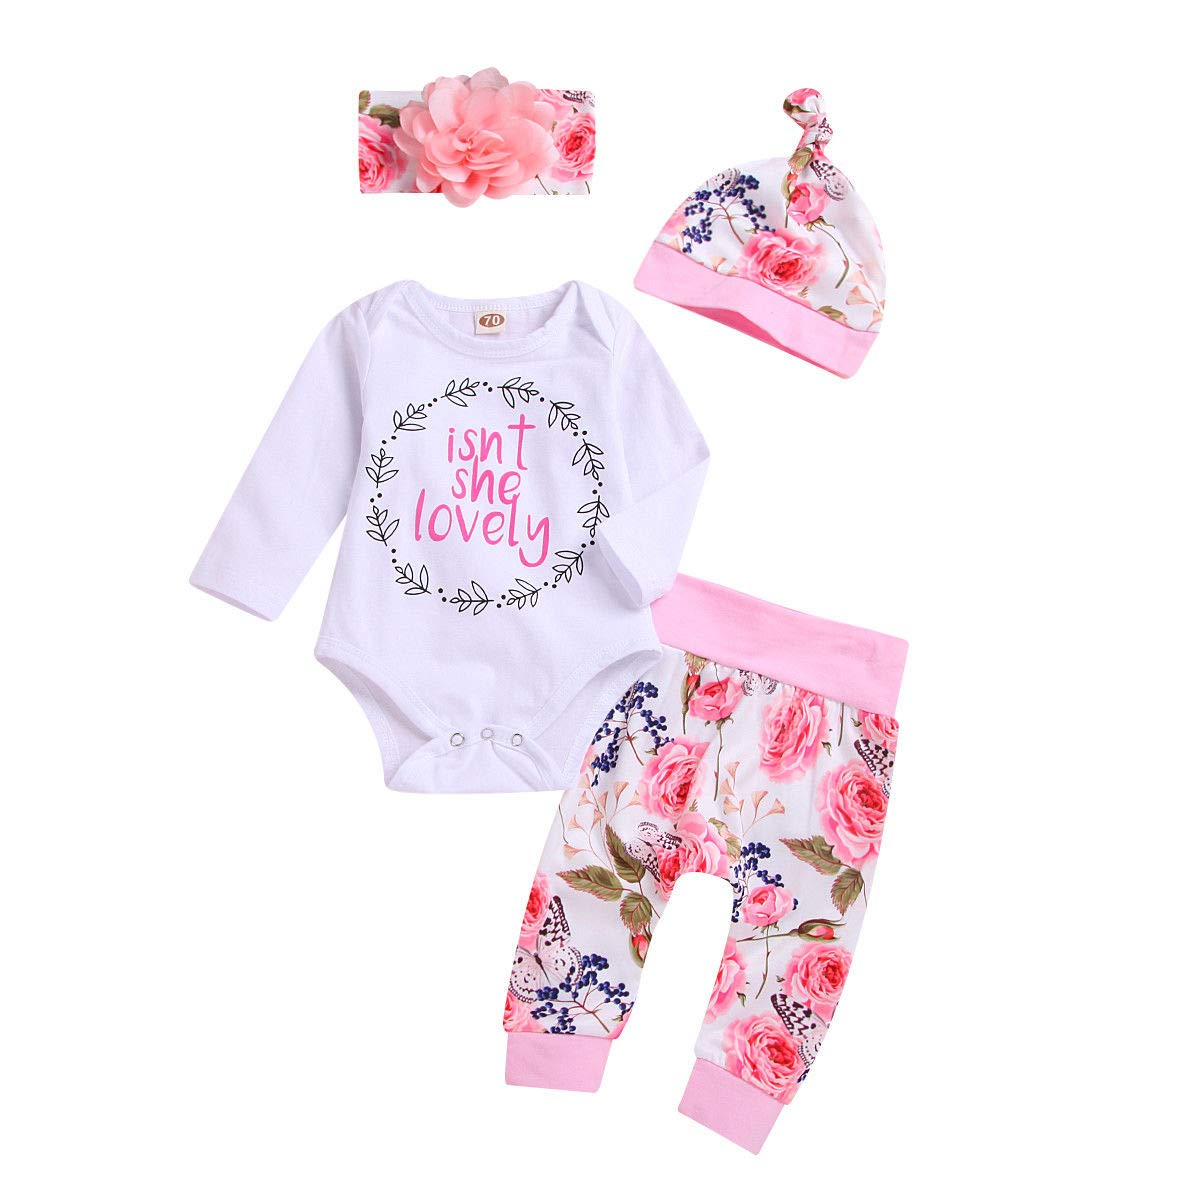 Newborn Baby Girl Isnt She Lovely Outfit Clothes White Romper Bodysuit Top Floral Pants Set with Headband Hat 4Pcs Clothing